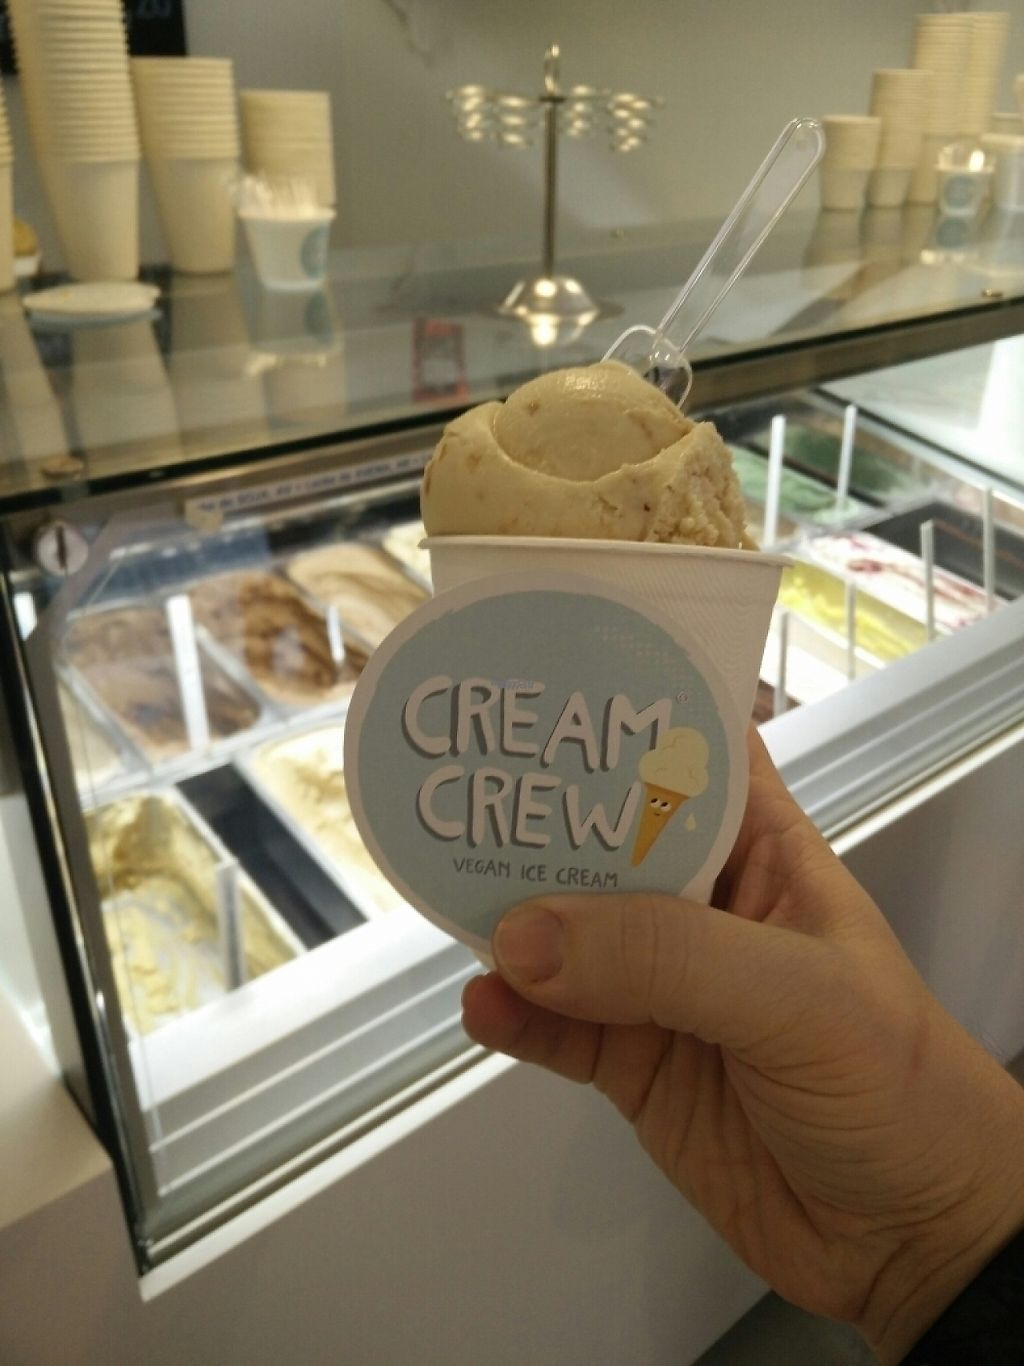 """Photo of Cream Crew  by <a href=""""/members/profile/Meaks"""">Meaks</a> <br/>Nom  <br/> November 8, 2016  - <a href='/contact/abuse/image/67479/187471'>Report</a>"""